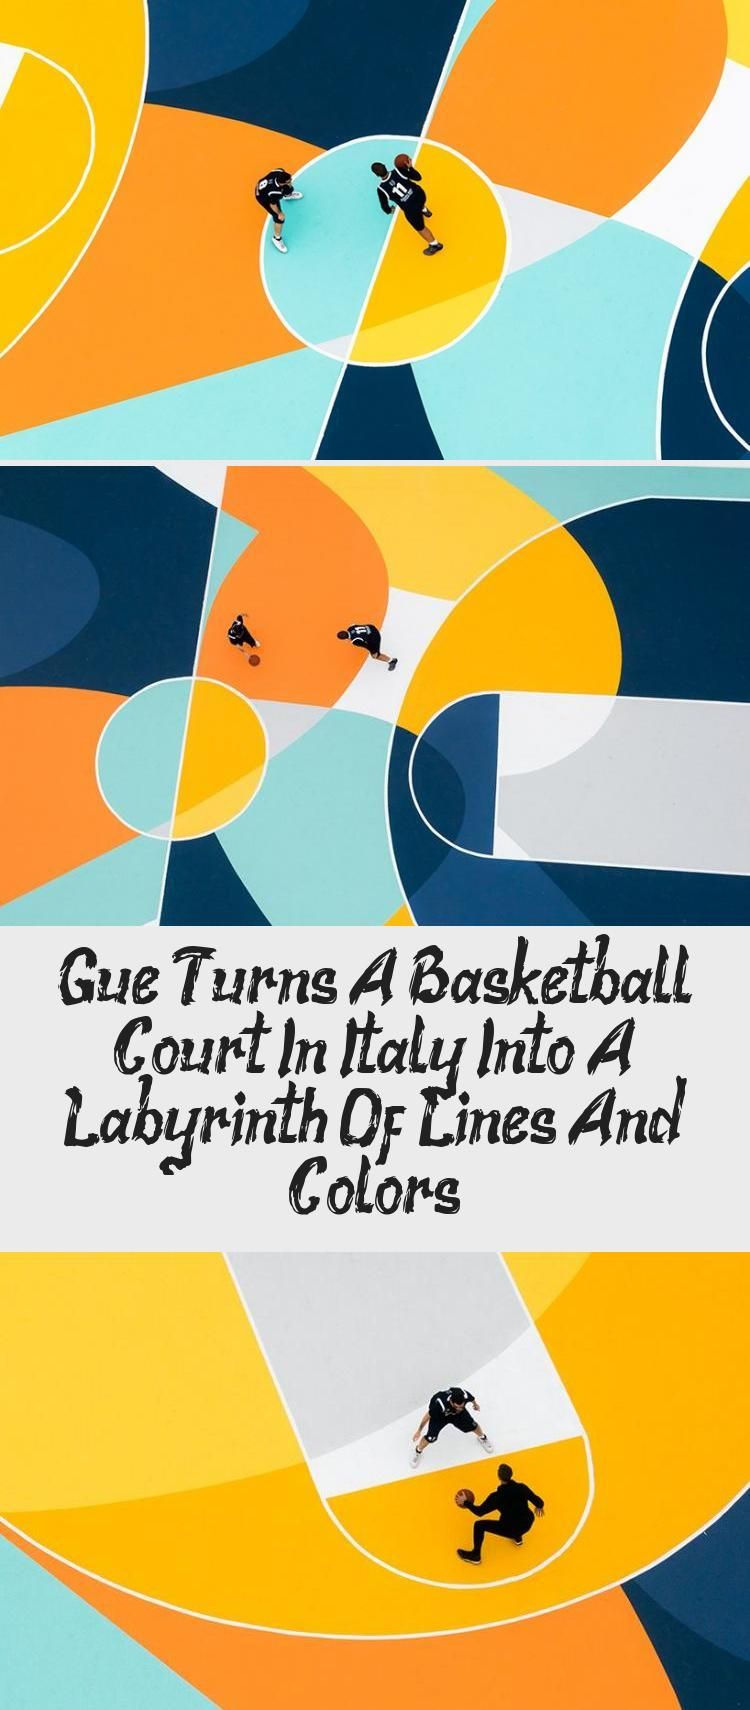 Gue Turns A Basketball Court In Italy Into A Labyrinth Of Lines And Colors  in 2020 | Art design, Alessandria, Italy